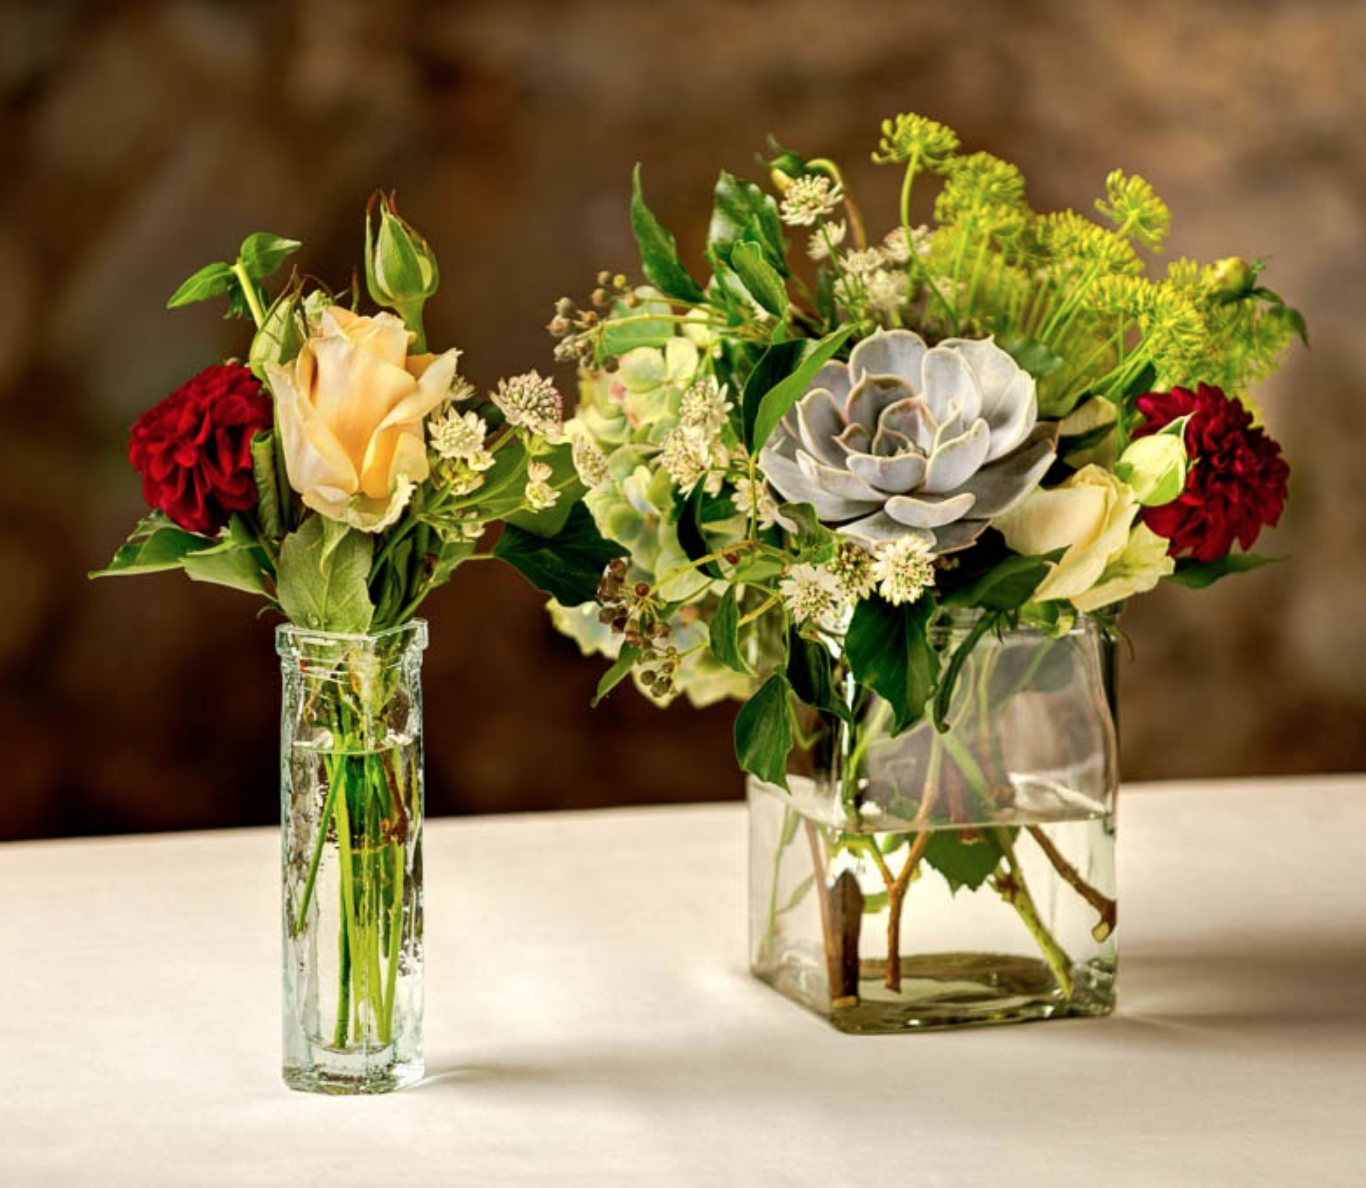 The perfect arrangement of flowers in the perfect vases.